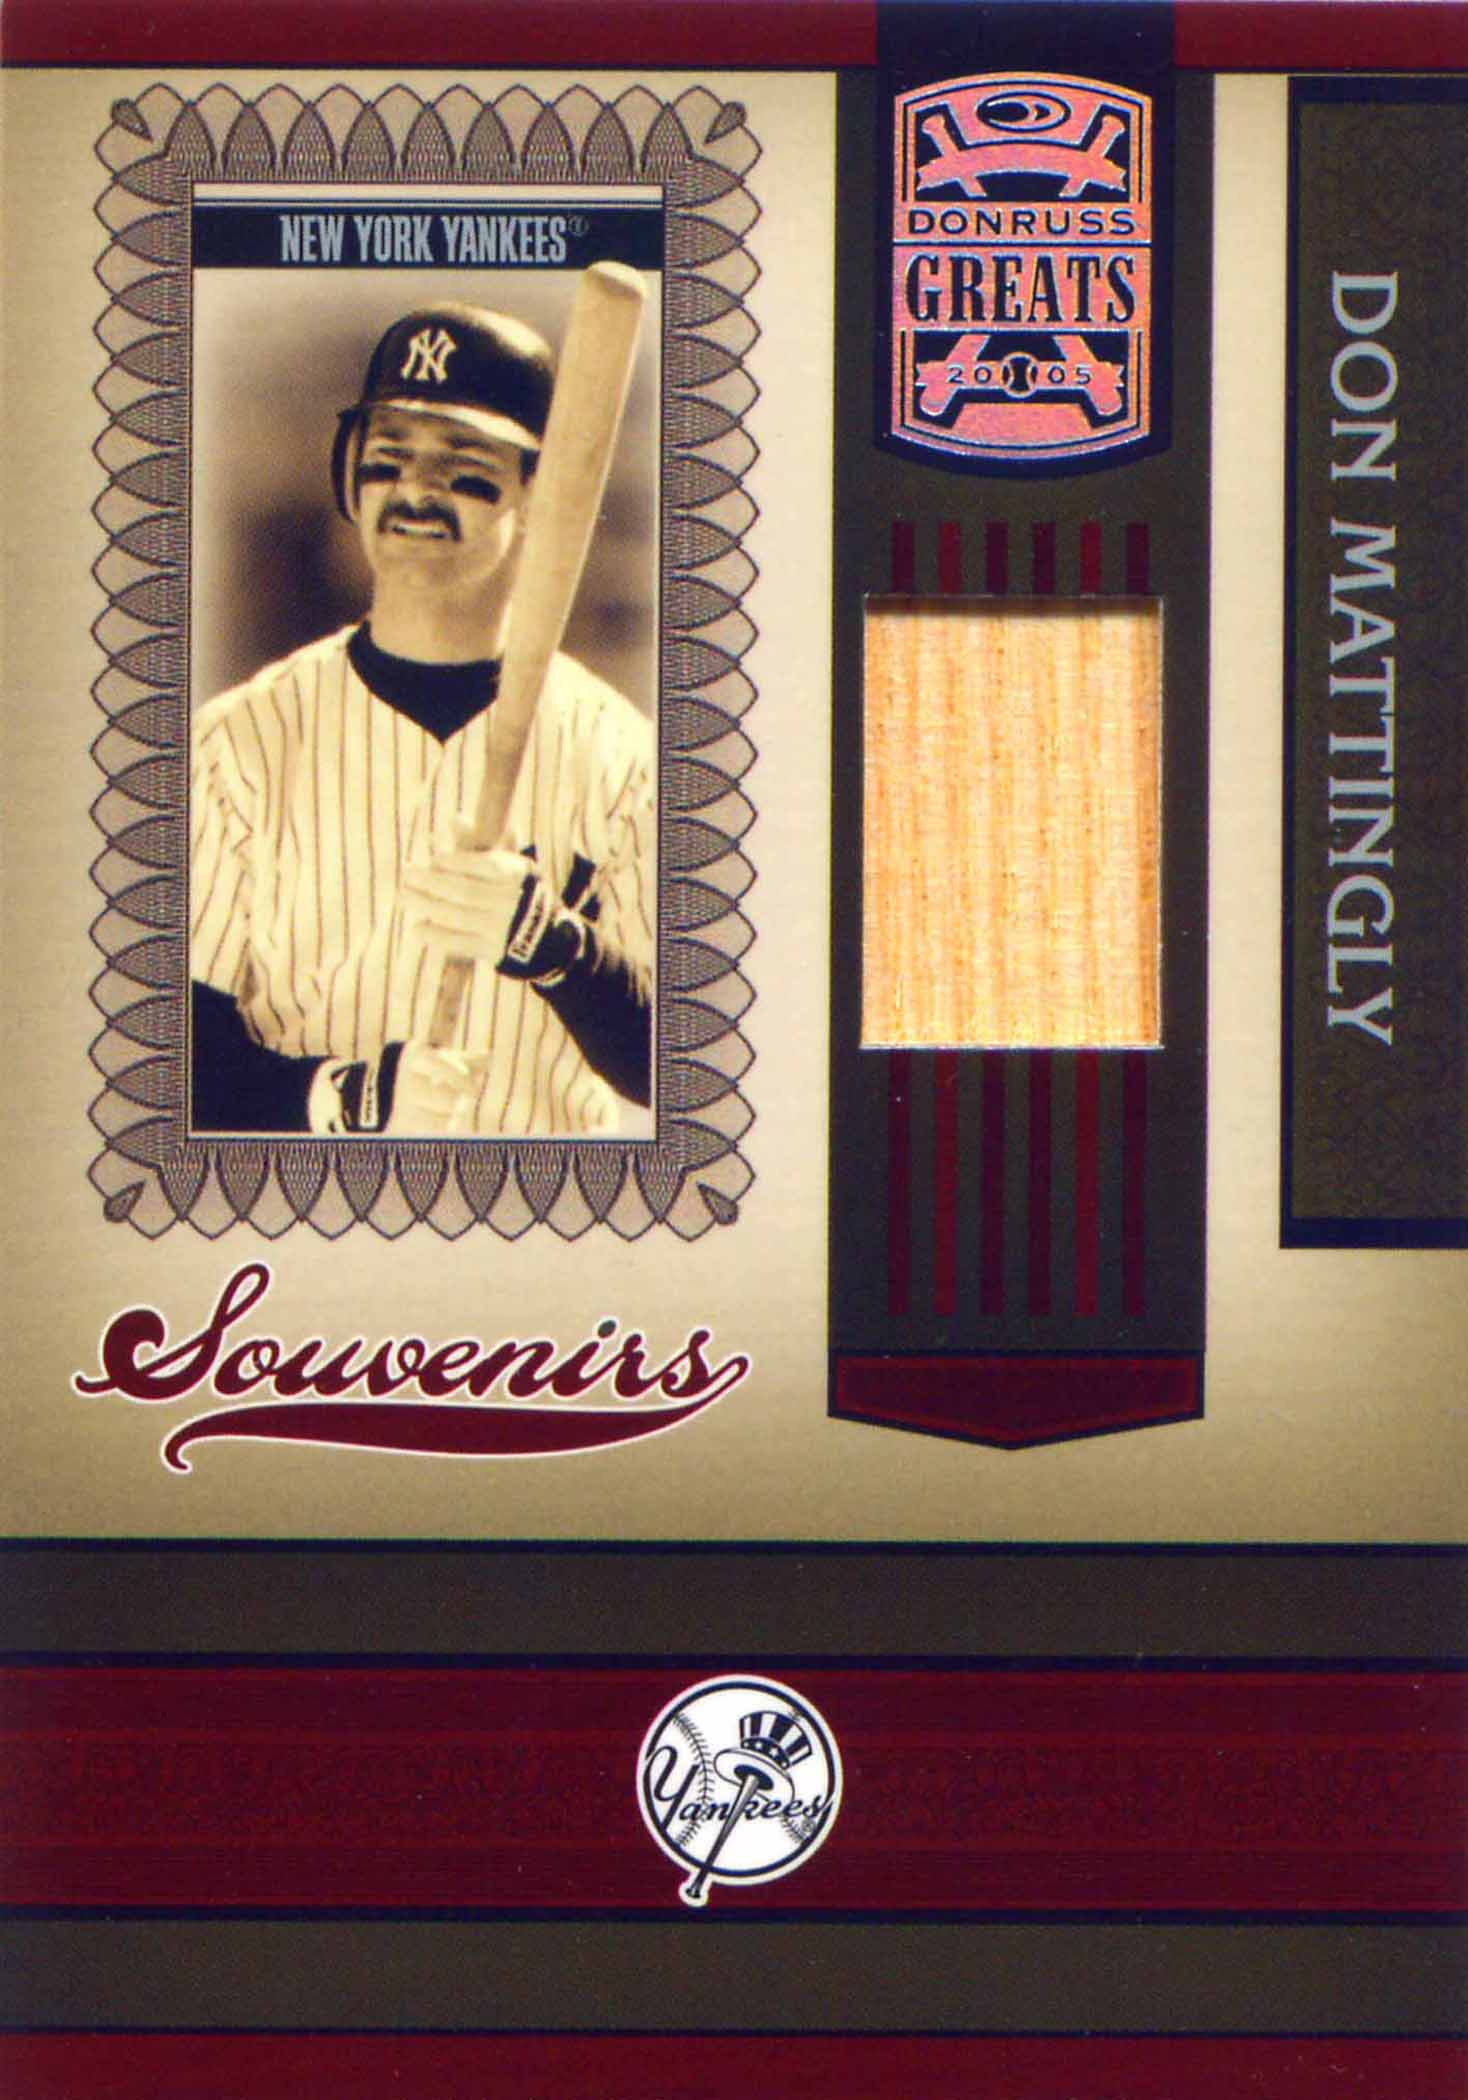 2005 Donruss Greats Souvenirs Material Bat